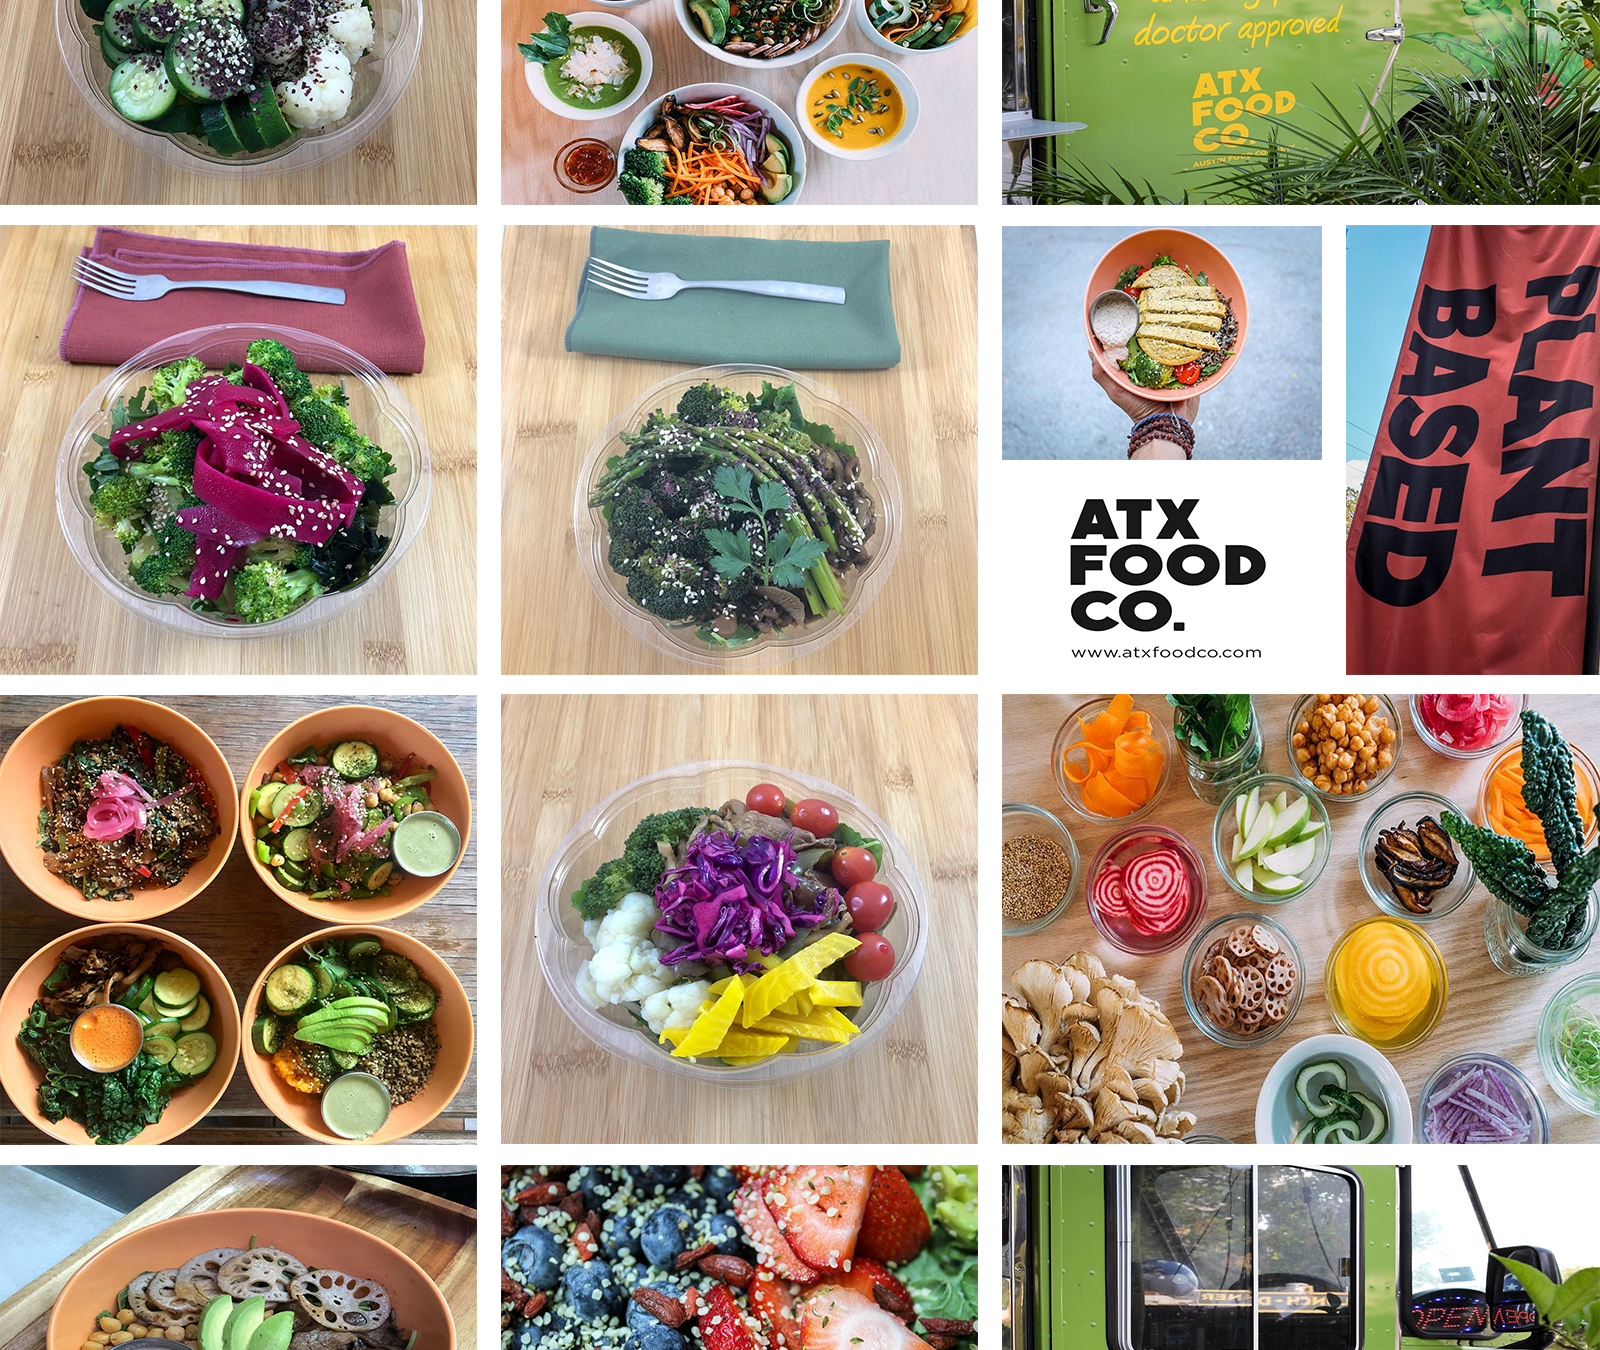 ATX FOOD CO collage of healthy food